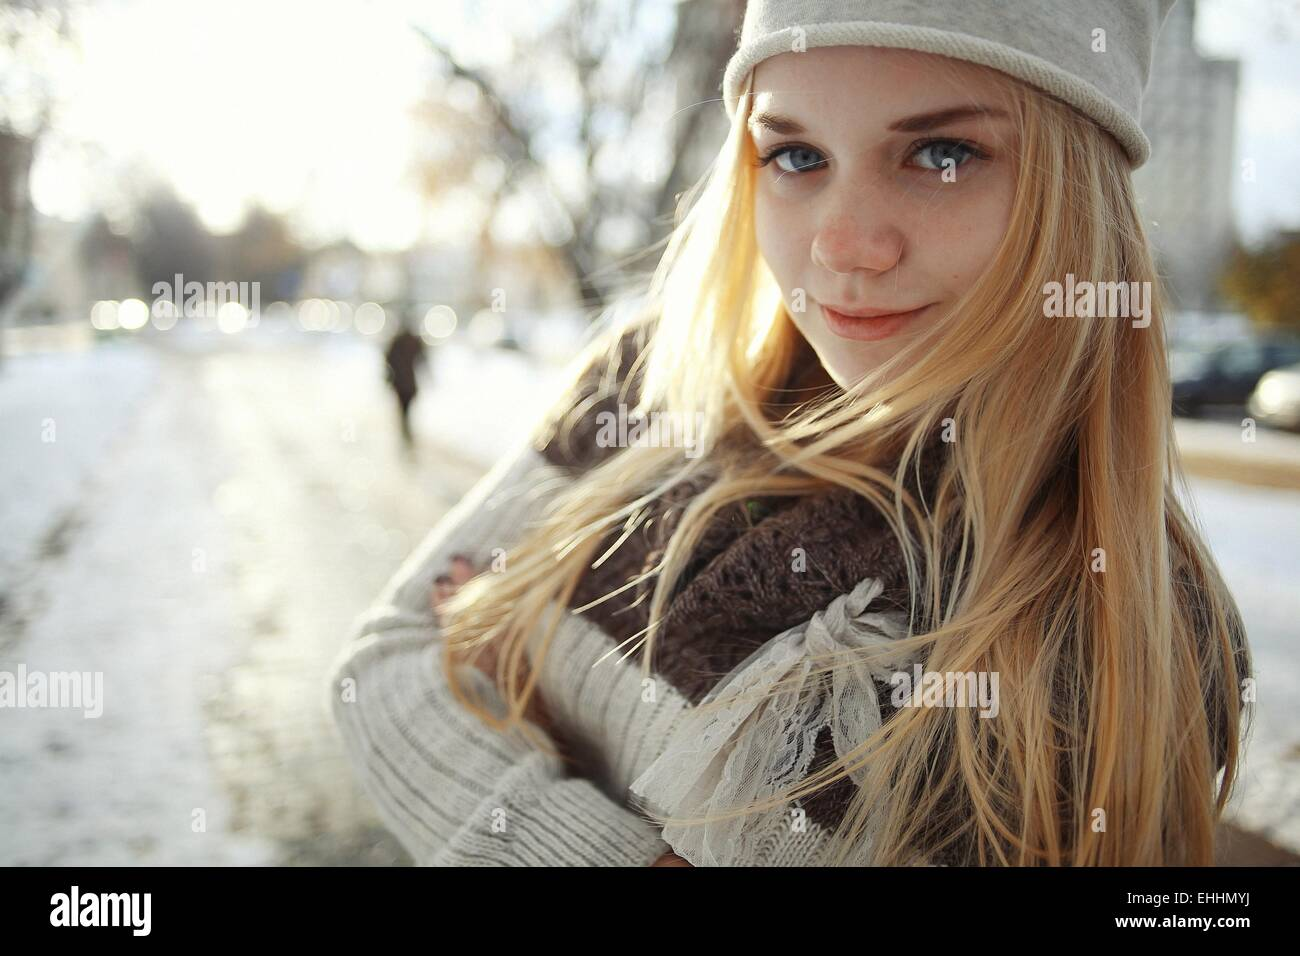 Winter Portrait Of A Cute Blonde Teen